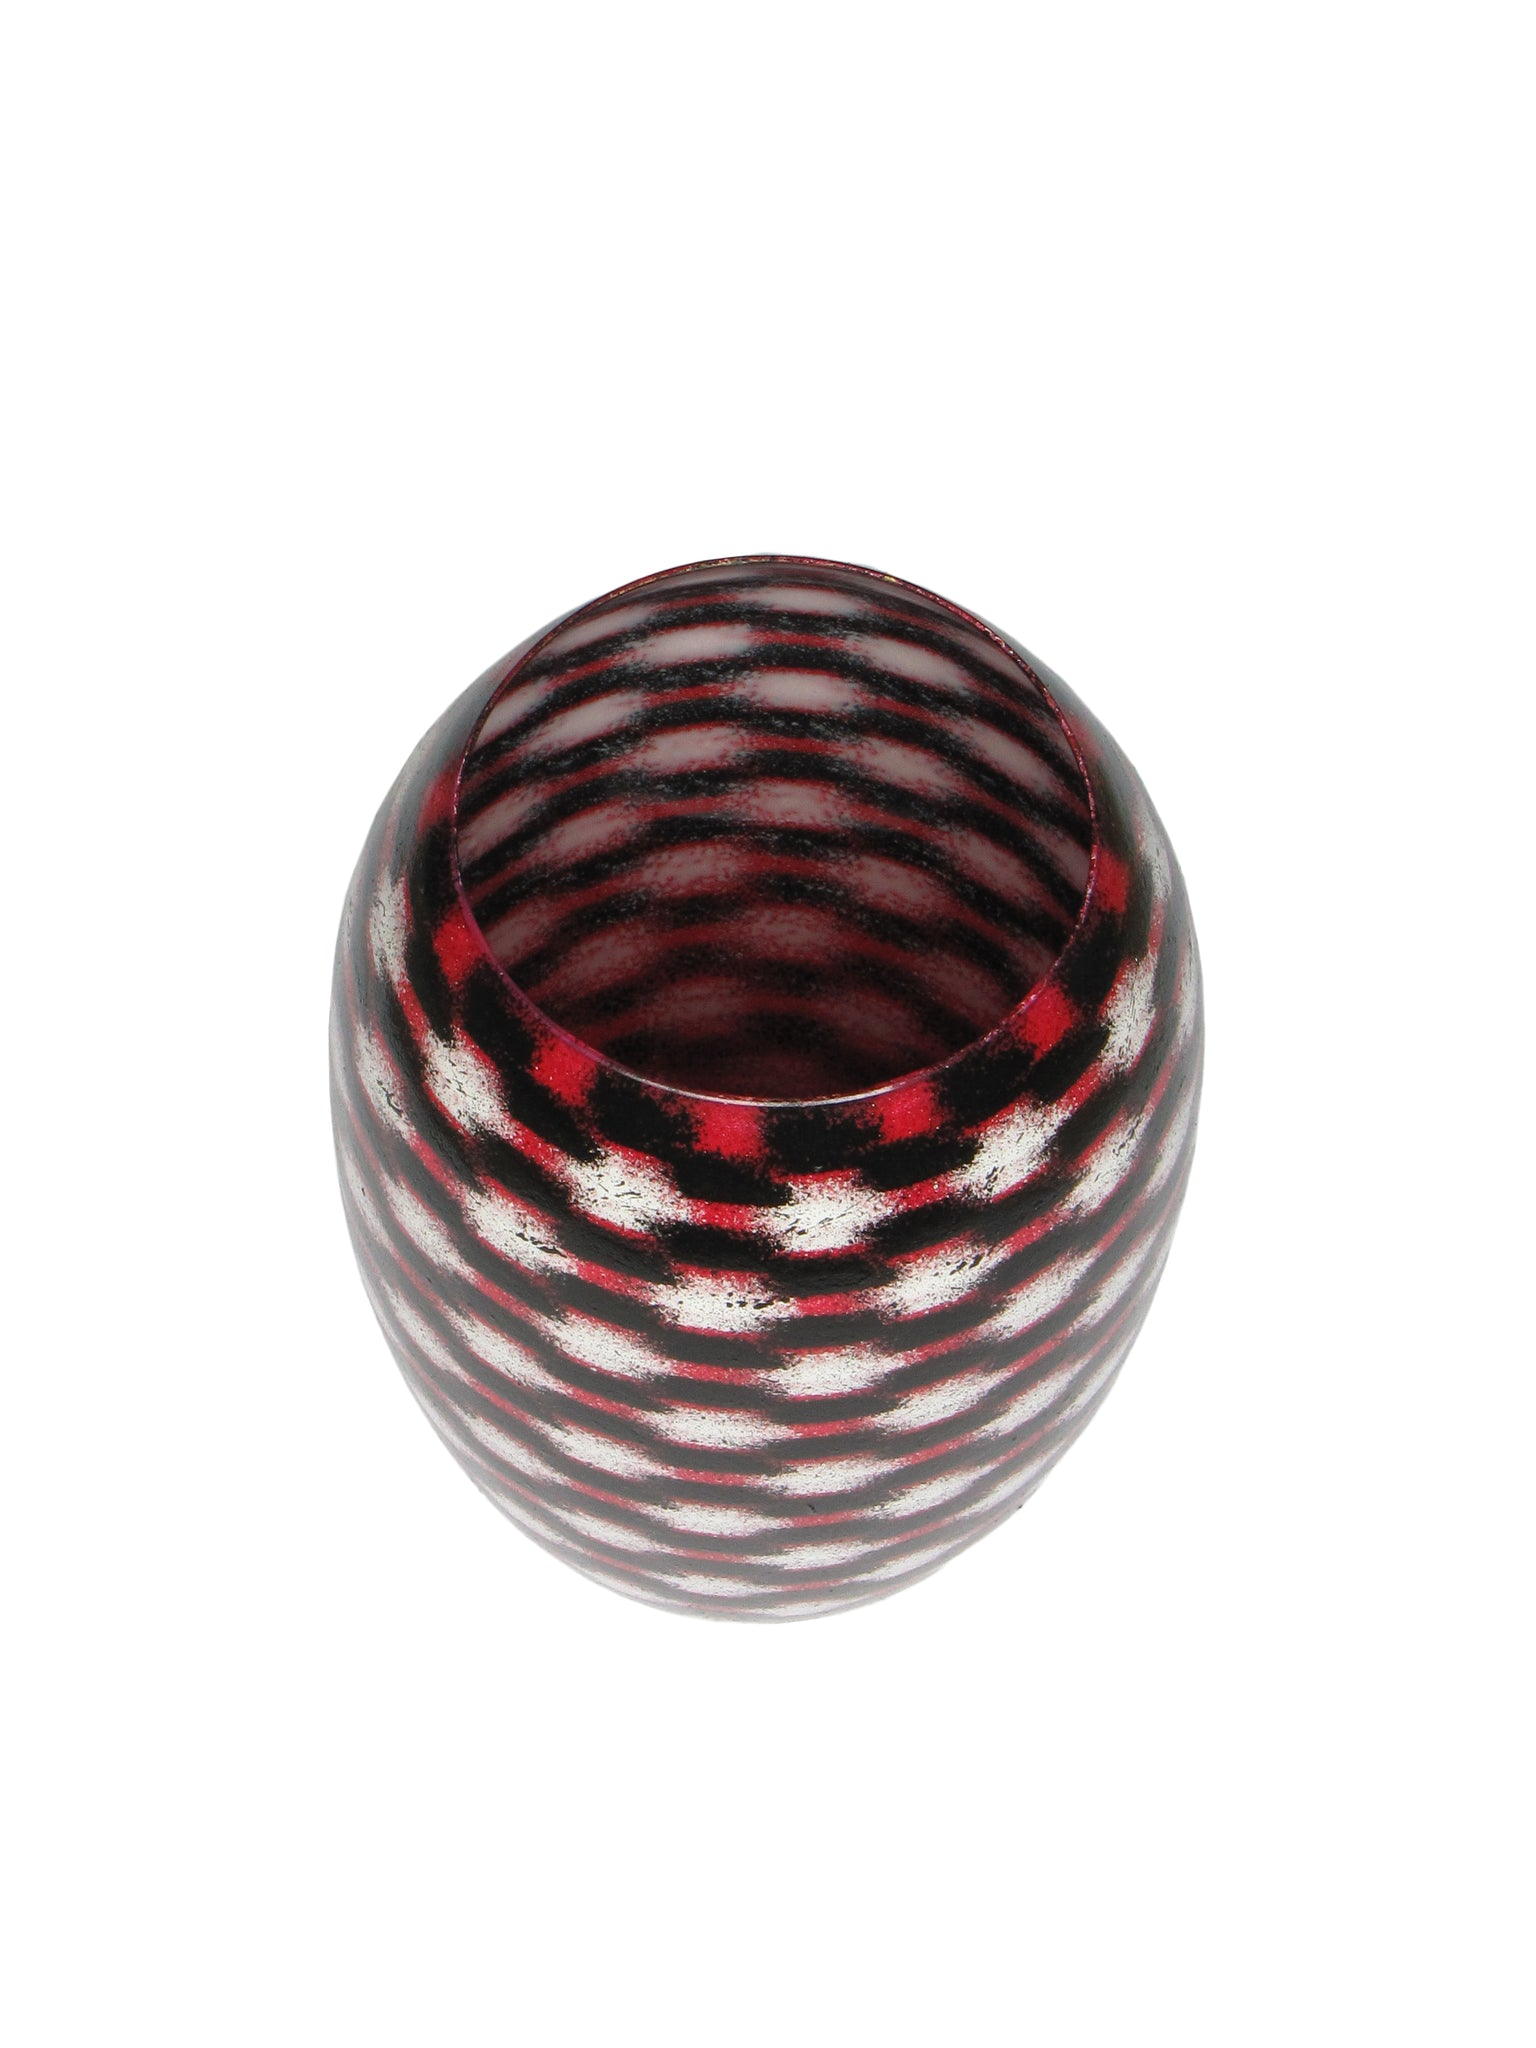 White on Red Teleport Barrel Vase MED